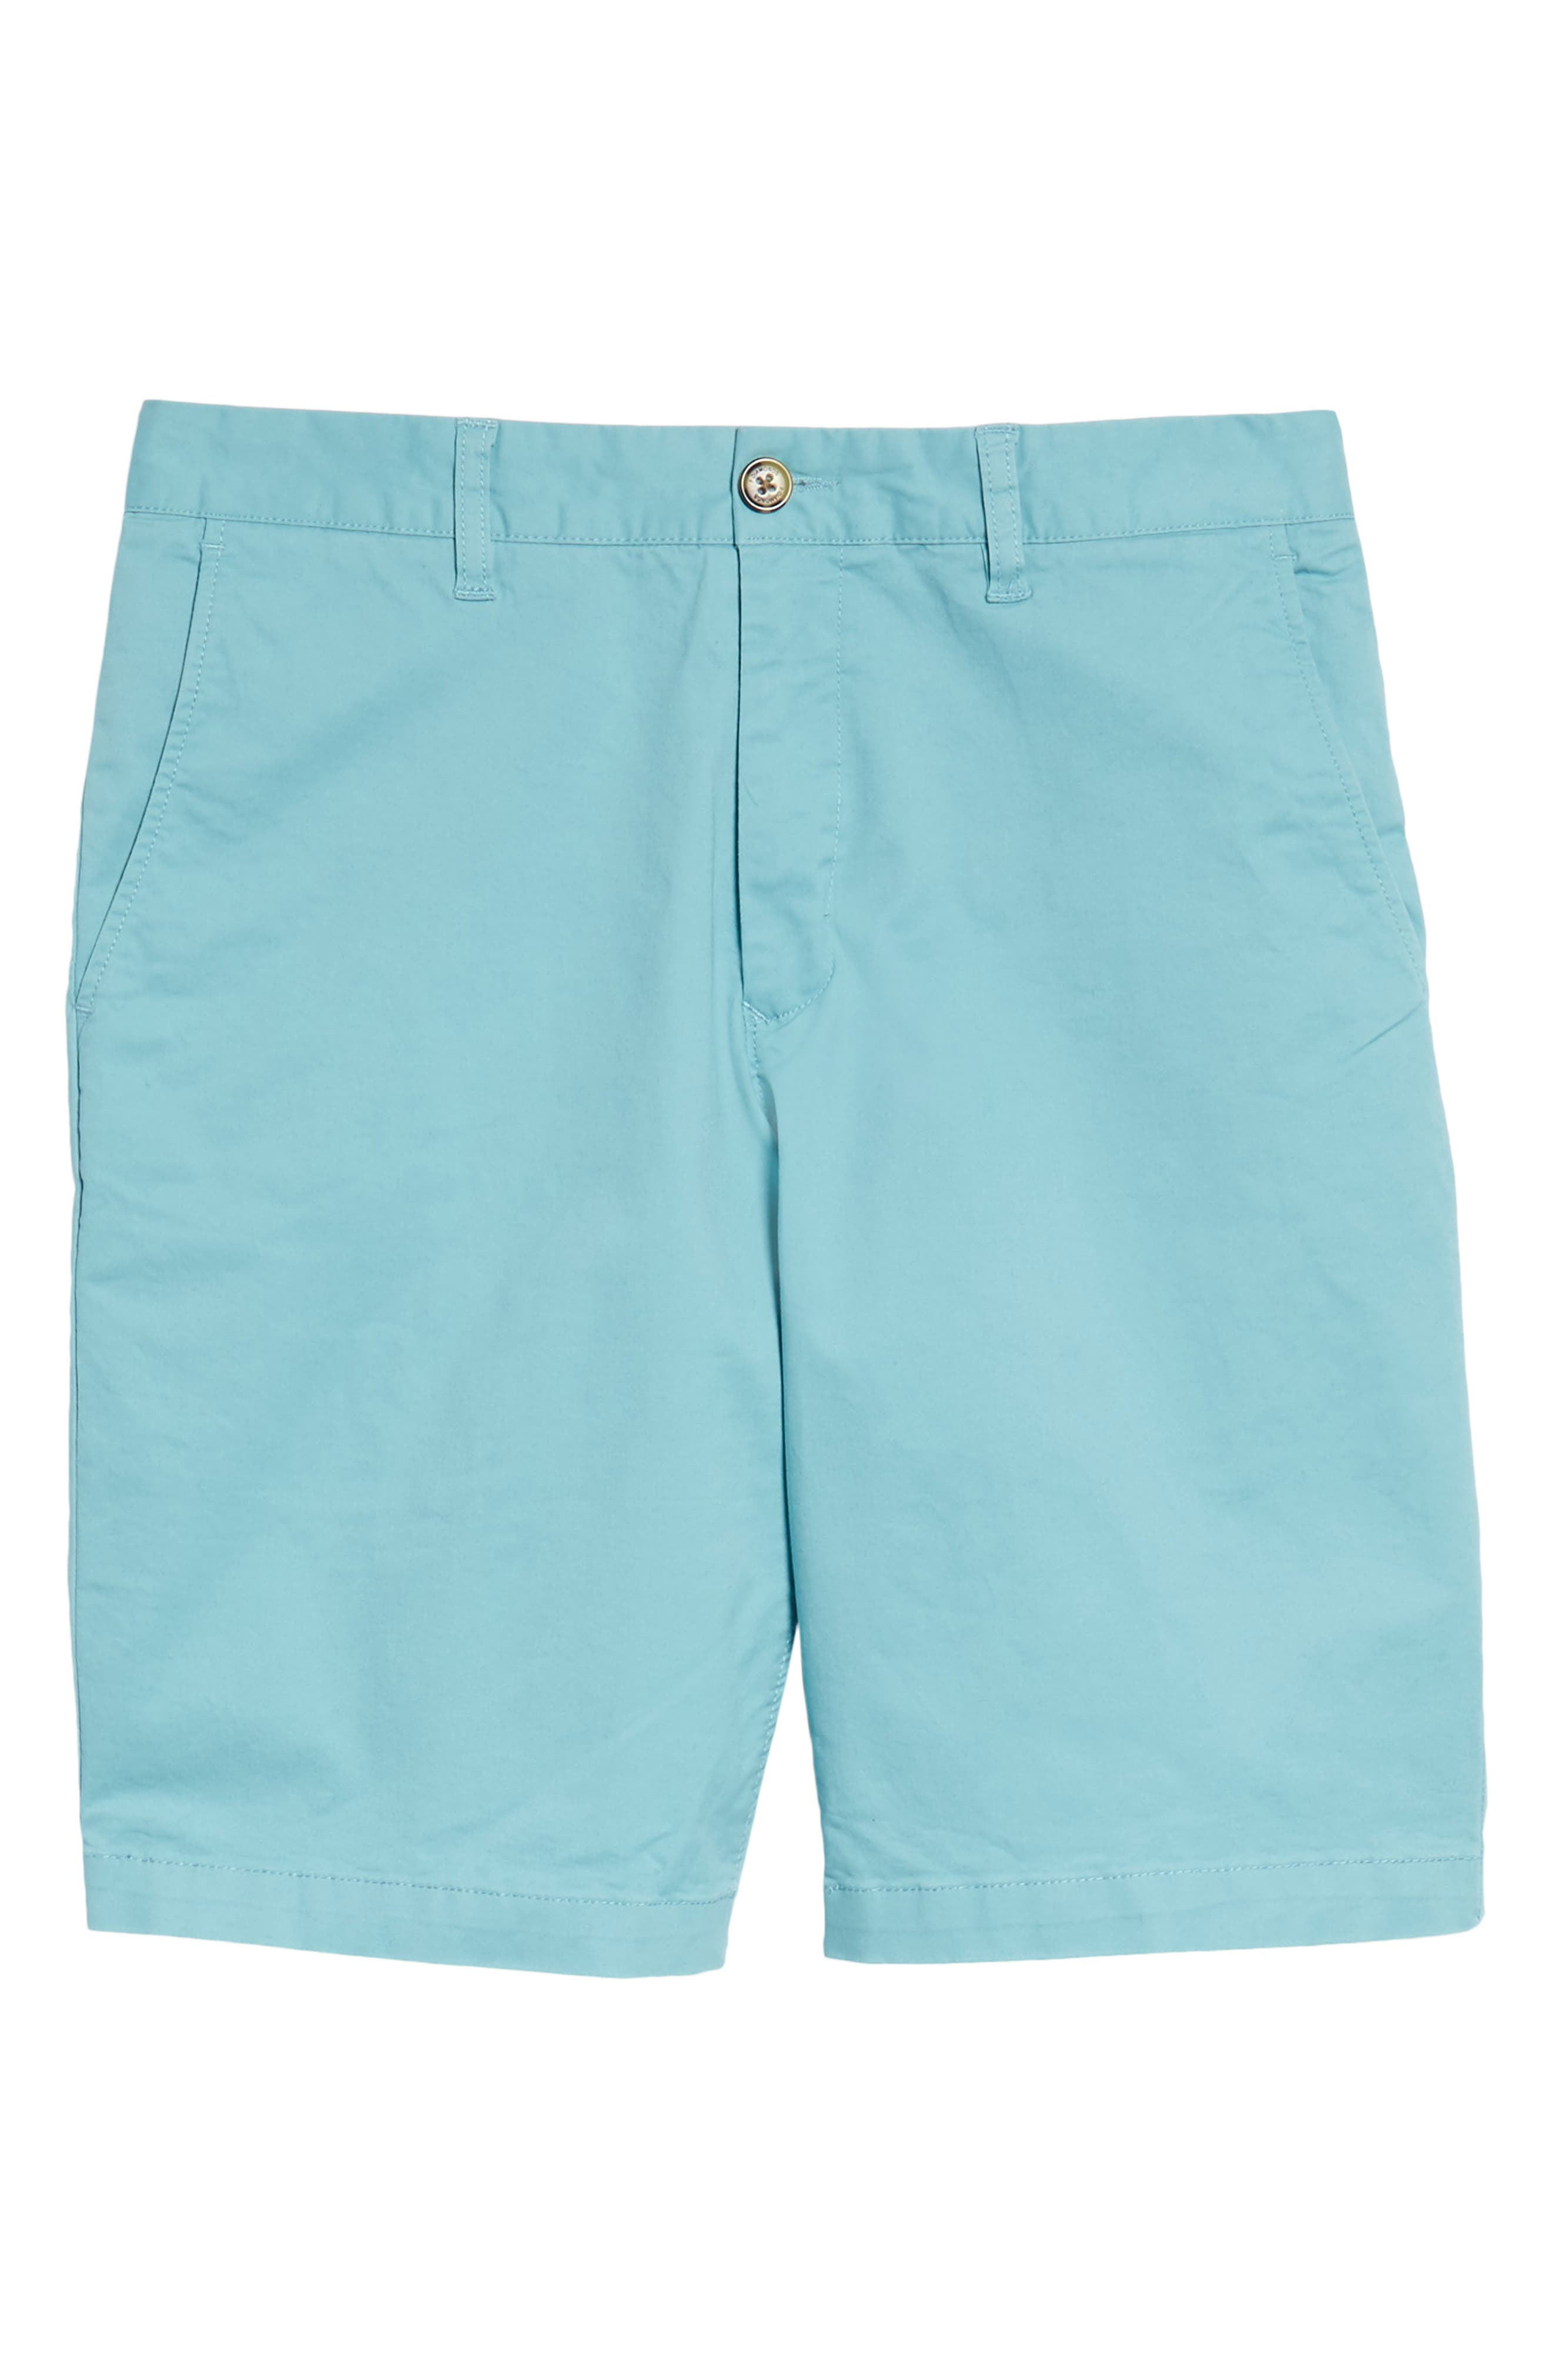 Slim Fit Brushed Twill Shorts,                             Alternate thumbnail 6, color,                             Dusty Blue